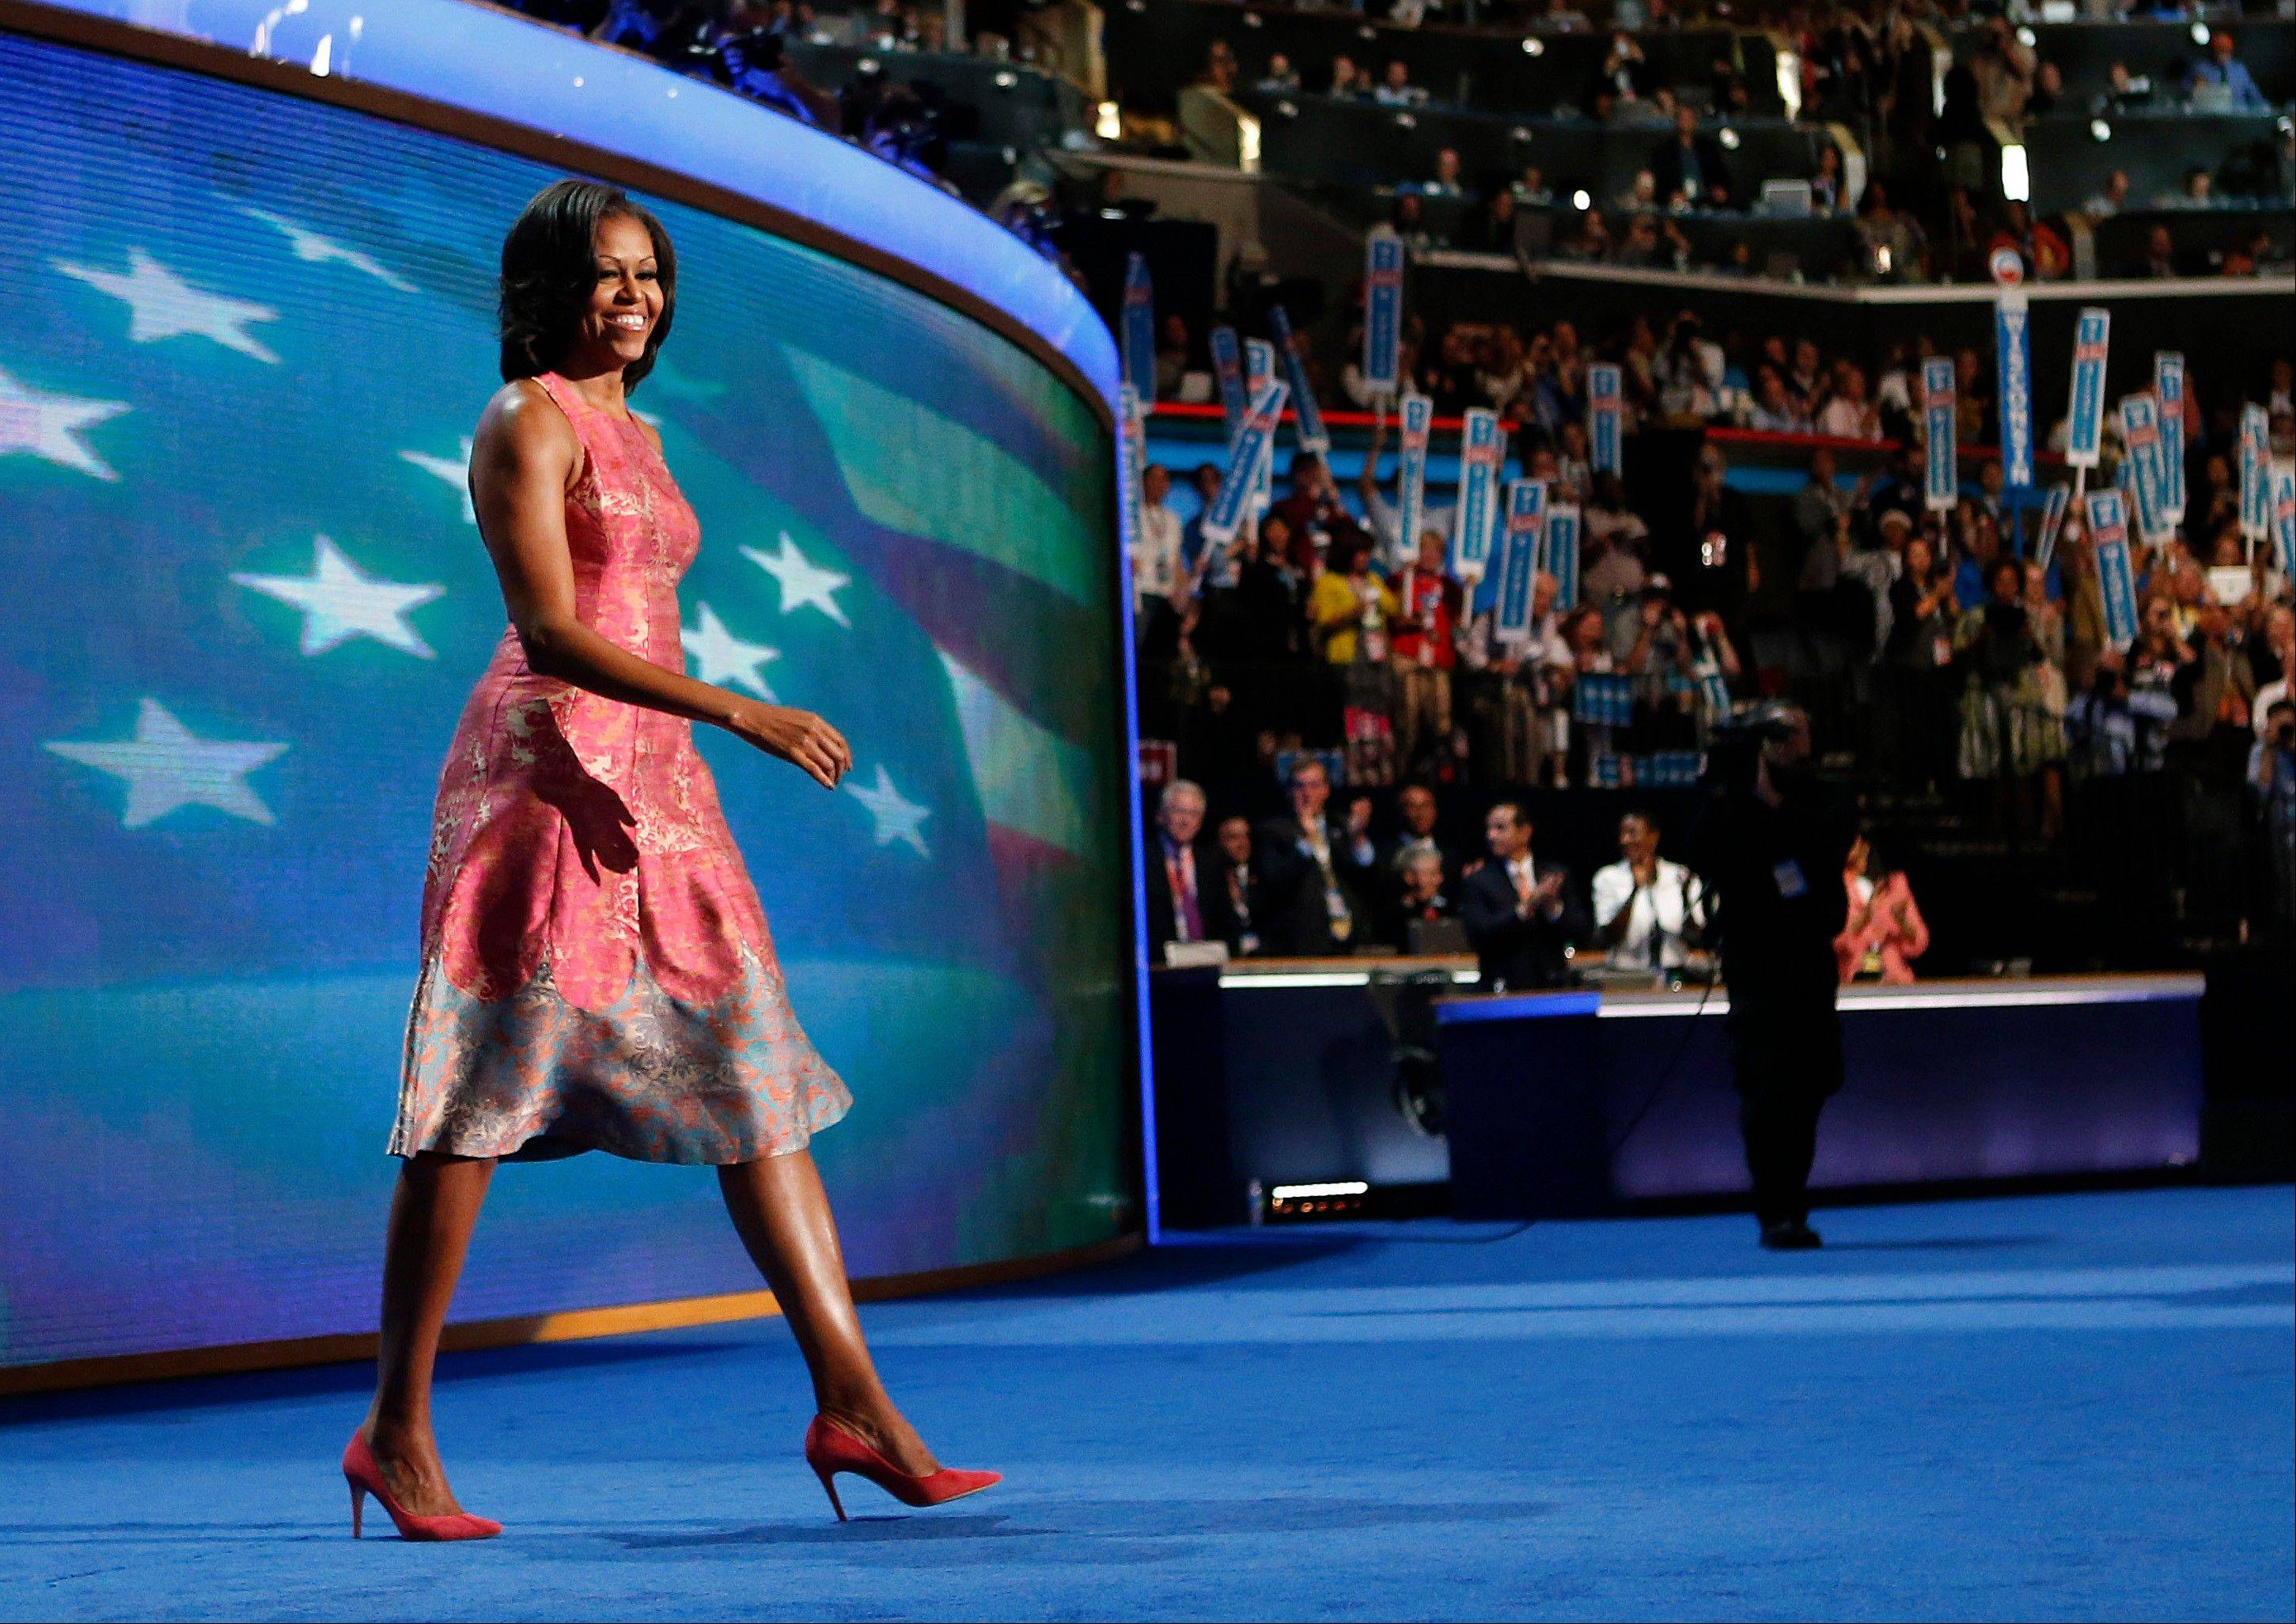 "First lady Michelle Obama walks onto the stage at the Democratic National Convention in Charlotte, N.C. Tracy Reese, who designed Obama's hot pink silk jacquard dress with pale blue trim at the hem, says she's rushing to make more of them. She told NBC's ""Today"" show that the dress will cost under $500."